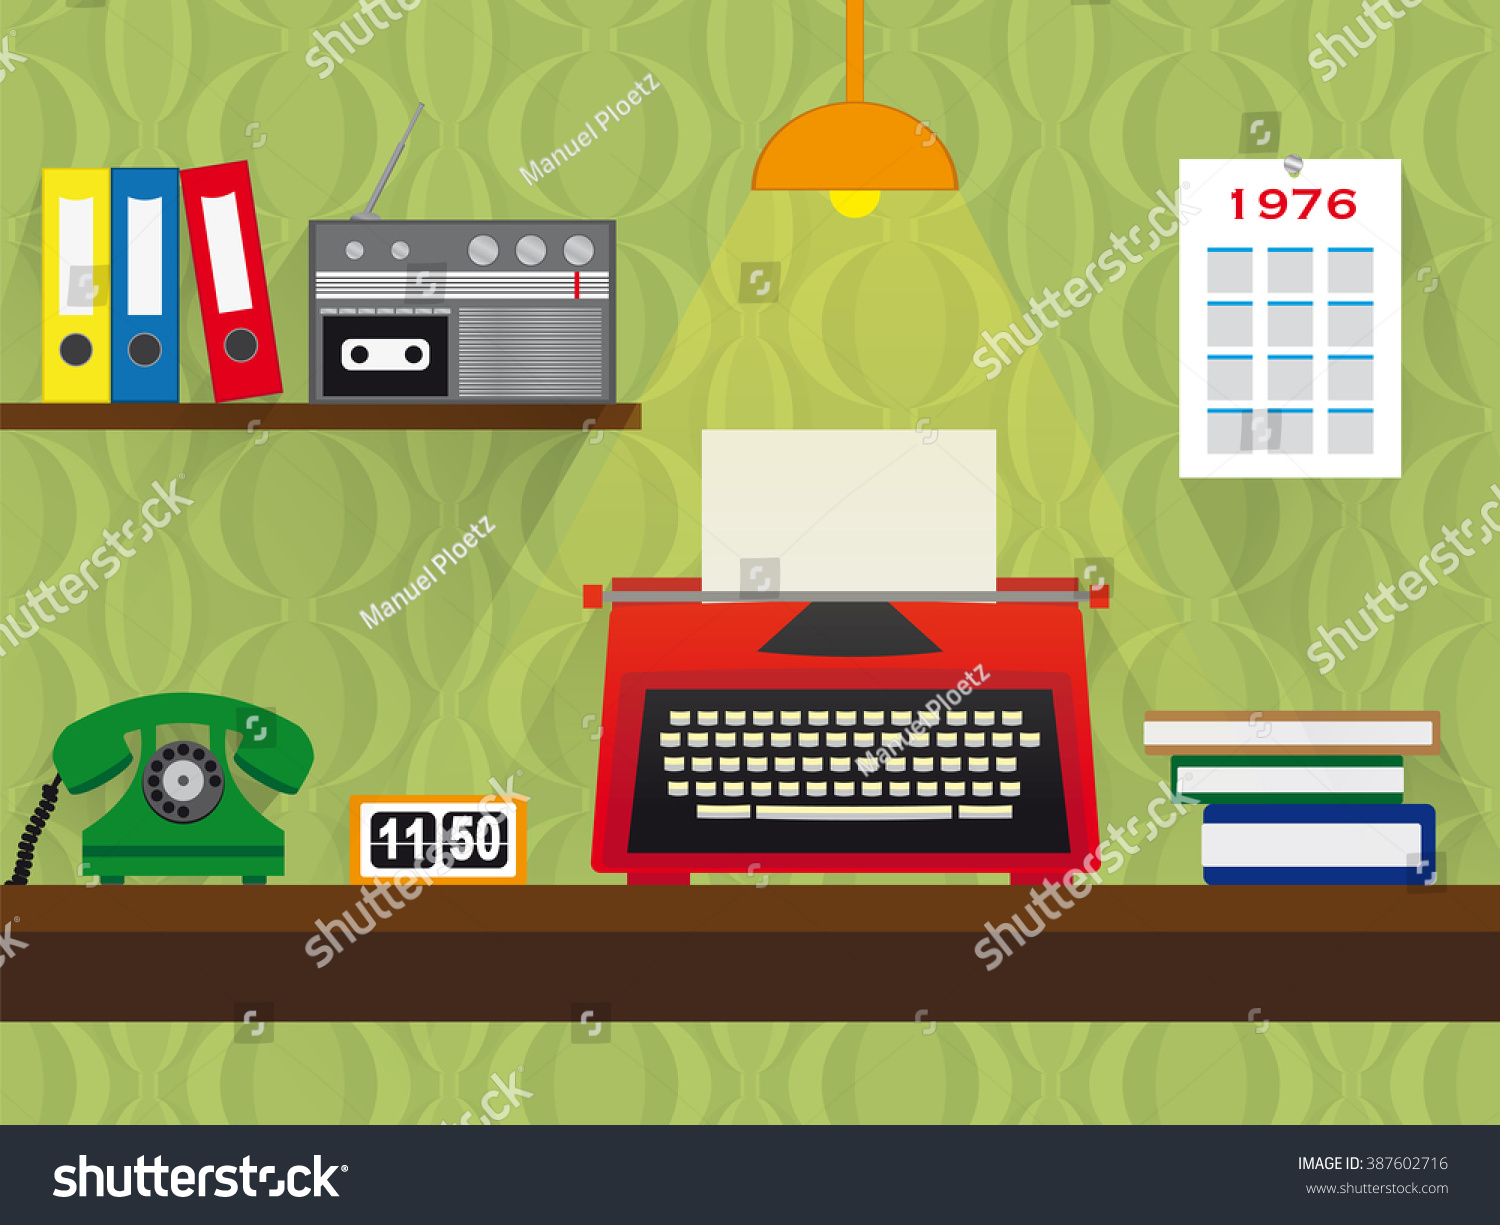 Seventies Retro Work Place Red Typewriter Stock Vector 387602716